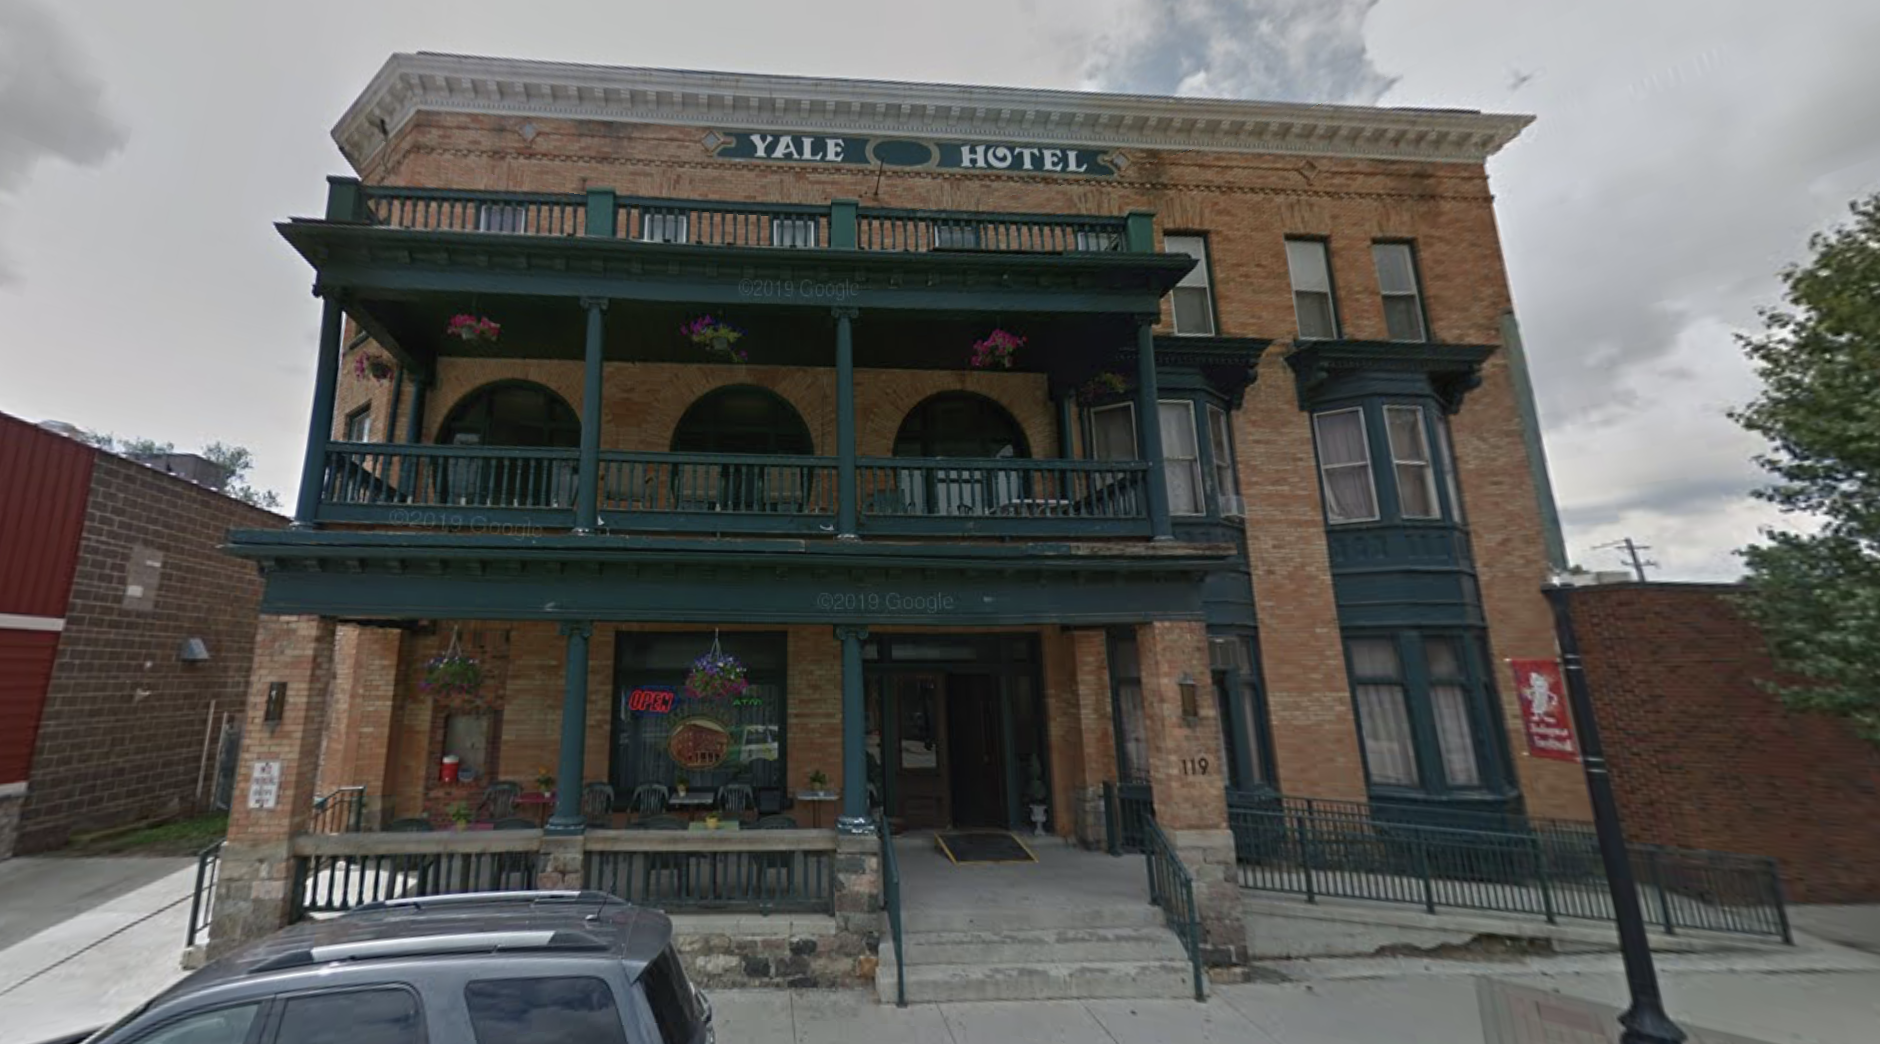 The Yale Hotel in Michigan has offered a free room and transportation for women seeking abortions. (Google Maps, Street View)